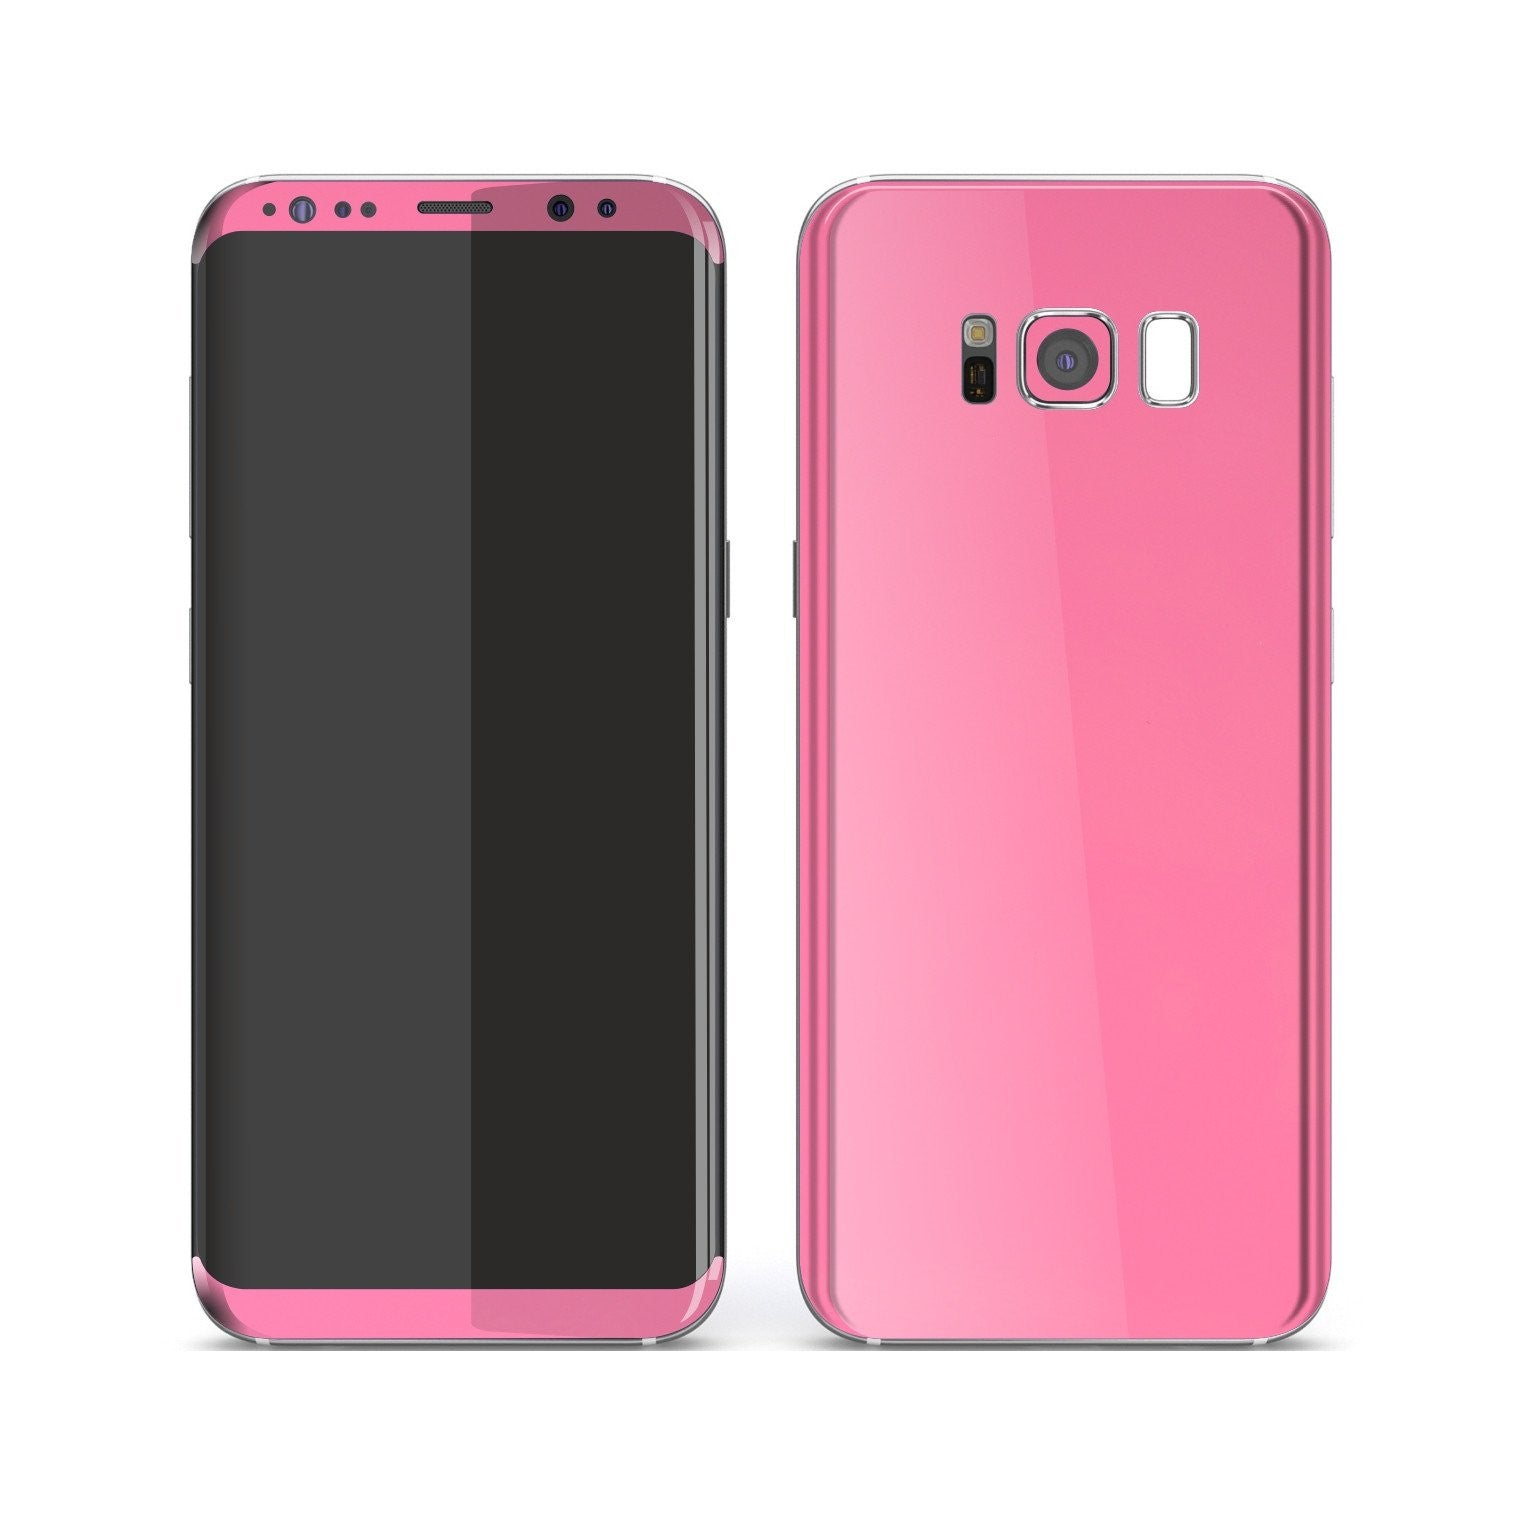 Samsung Galaxy S8 Hot Pink Glossy Gloss Finish Skin, Decal, Wrap, Protector, Cover by EasySkinz | EasySkinz.com